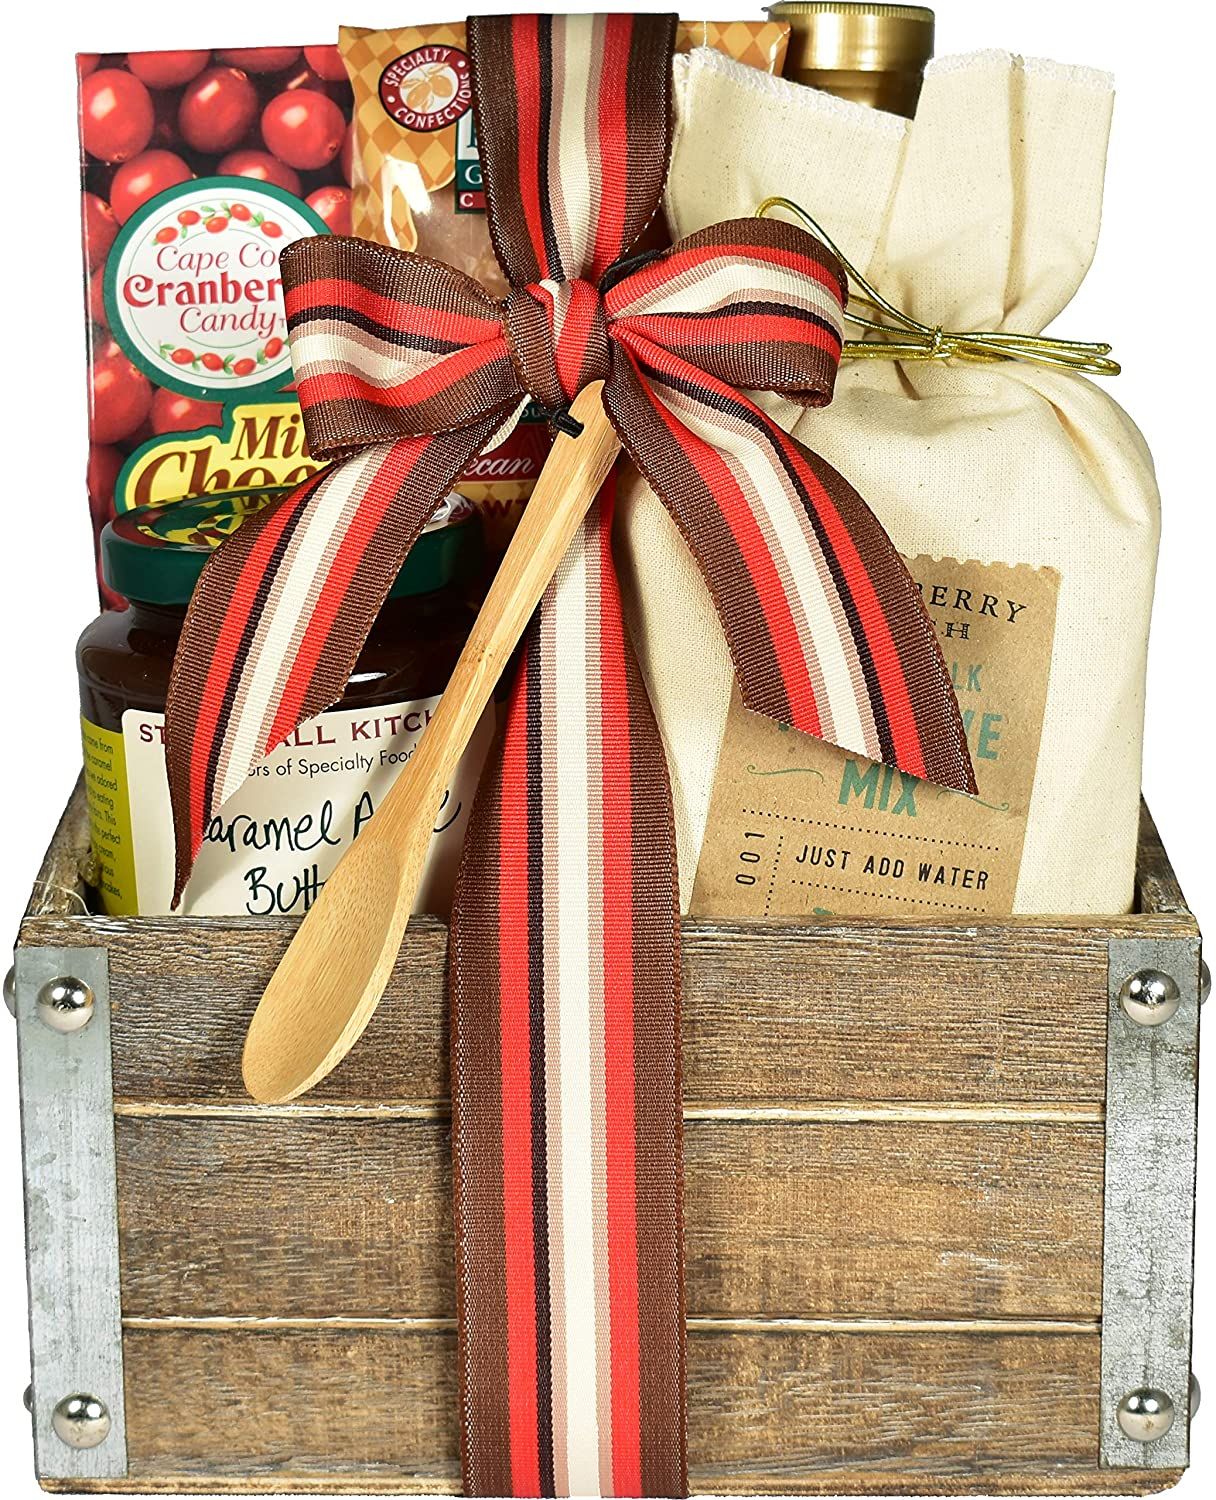 Gift Basket Village Downhome Breakfast Gift Pack - Breakfast GIft in Old Fashion Wooden Box with Pancake Mix, Gourmet Toppings and Breakfast Dessert